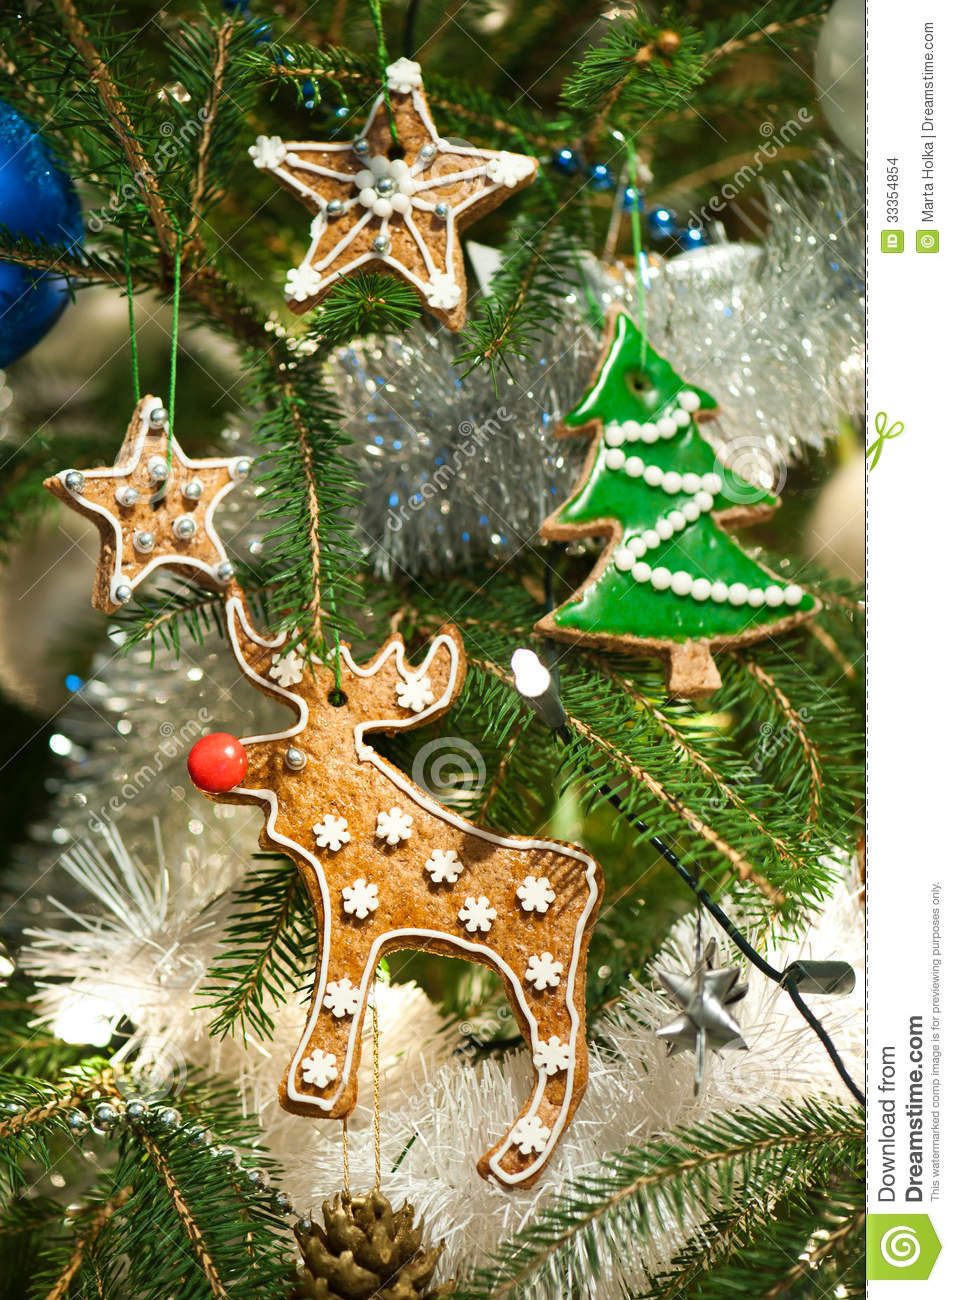 baked christmas tree decoration - Gingerbread Christmas Tree Decorations